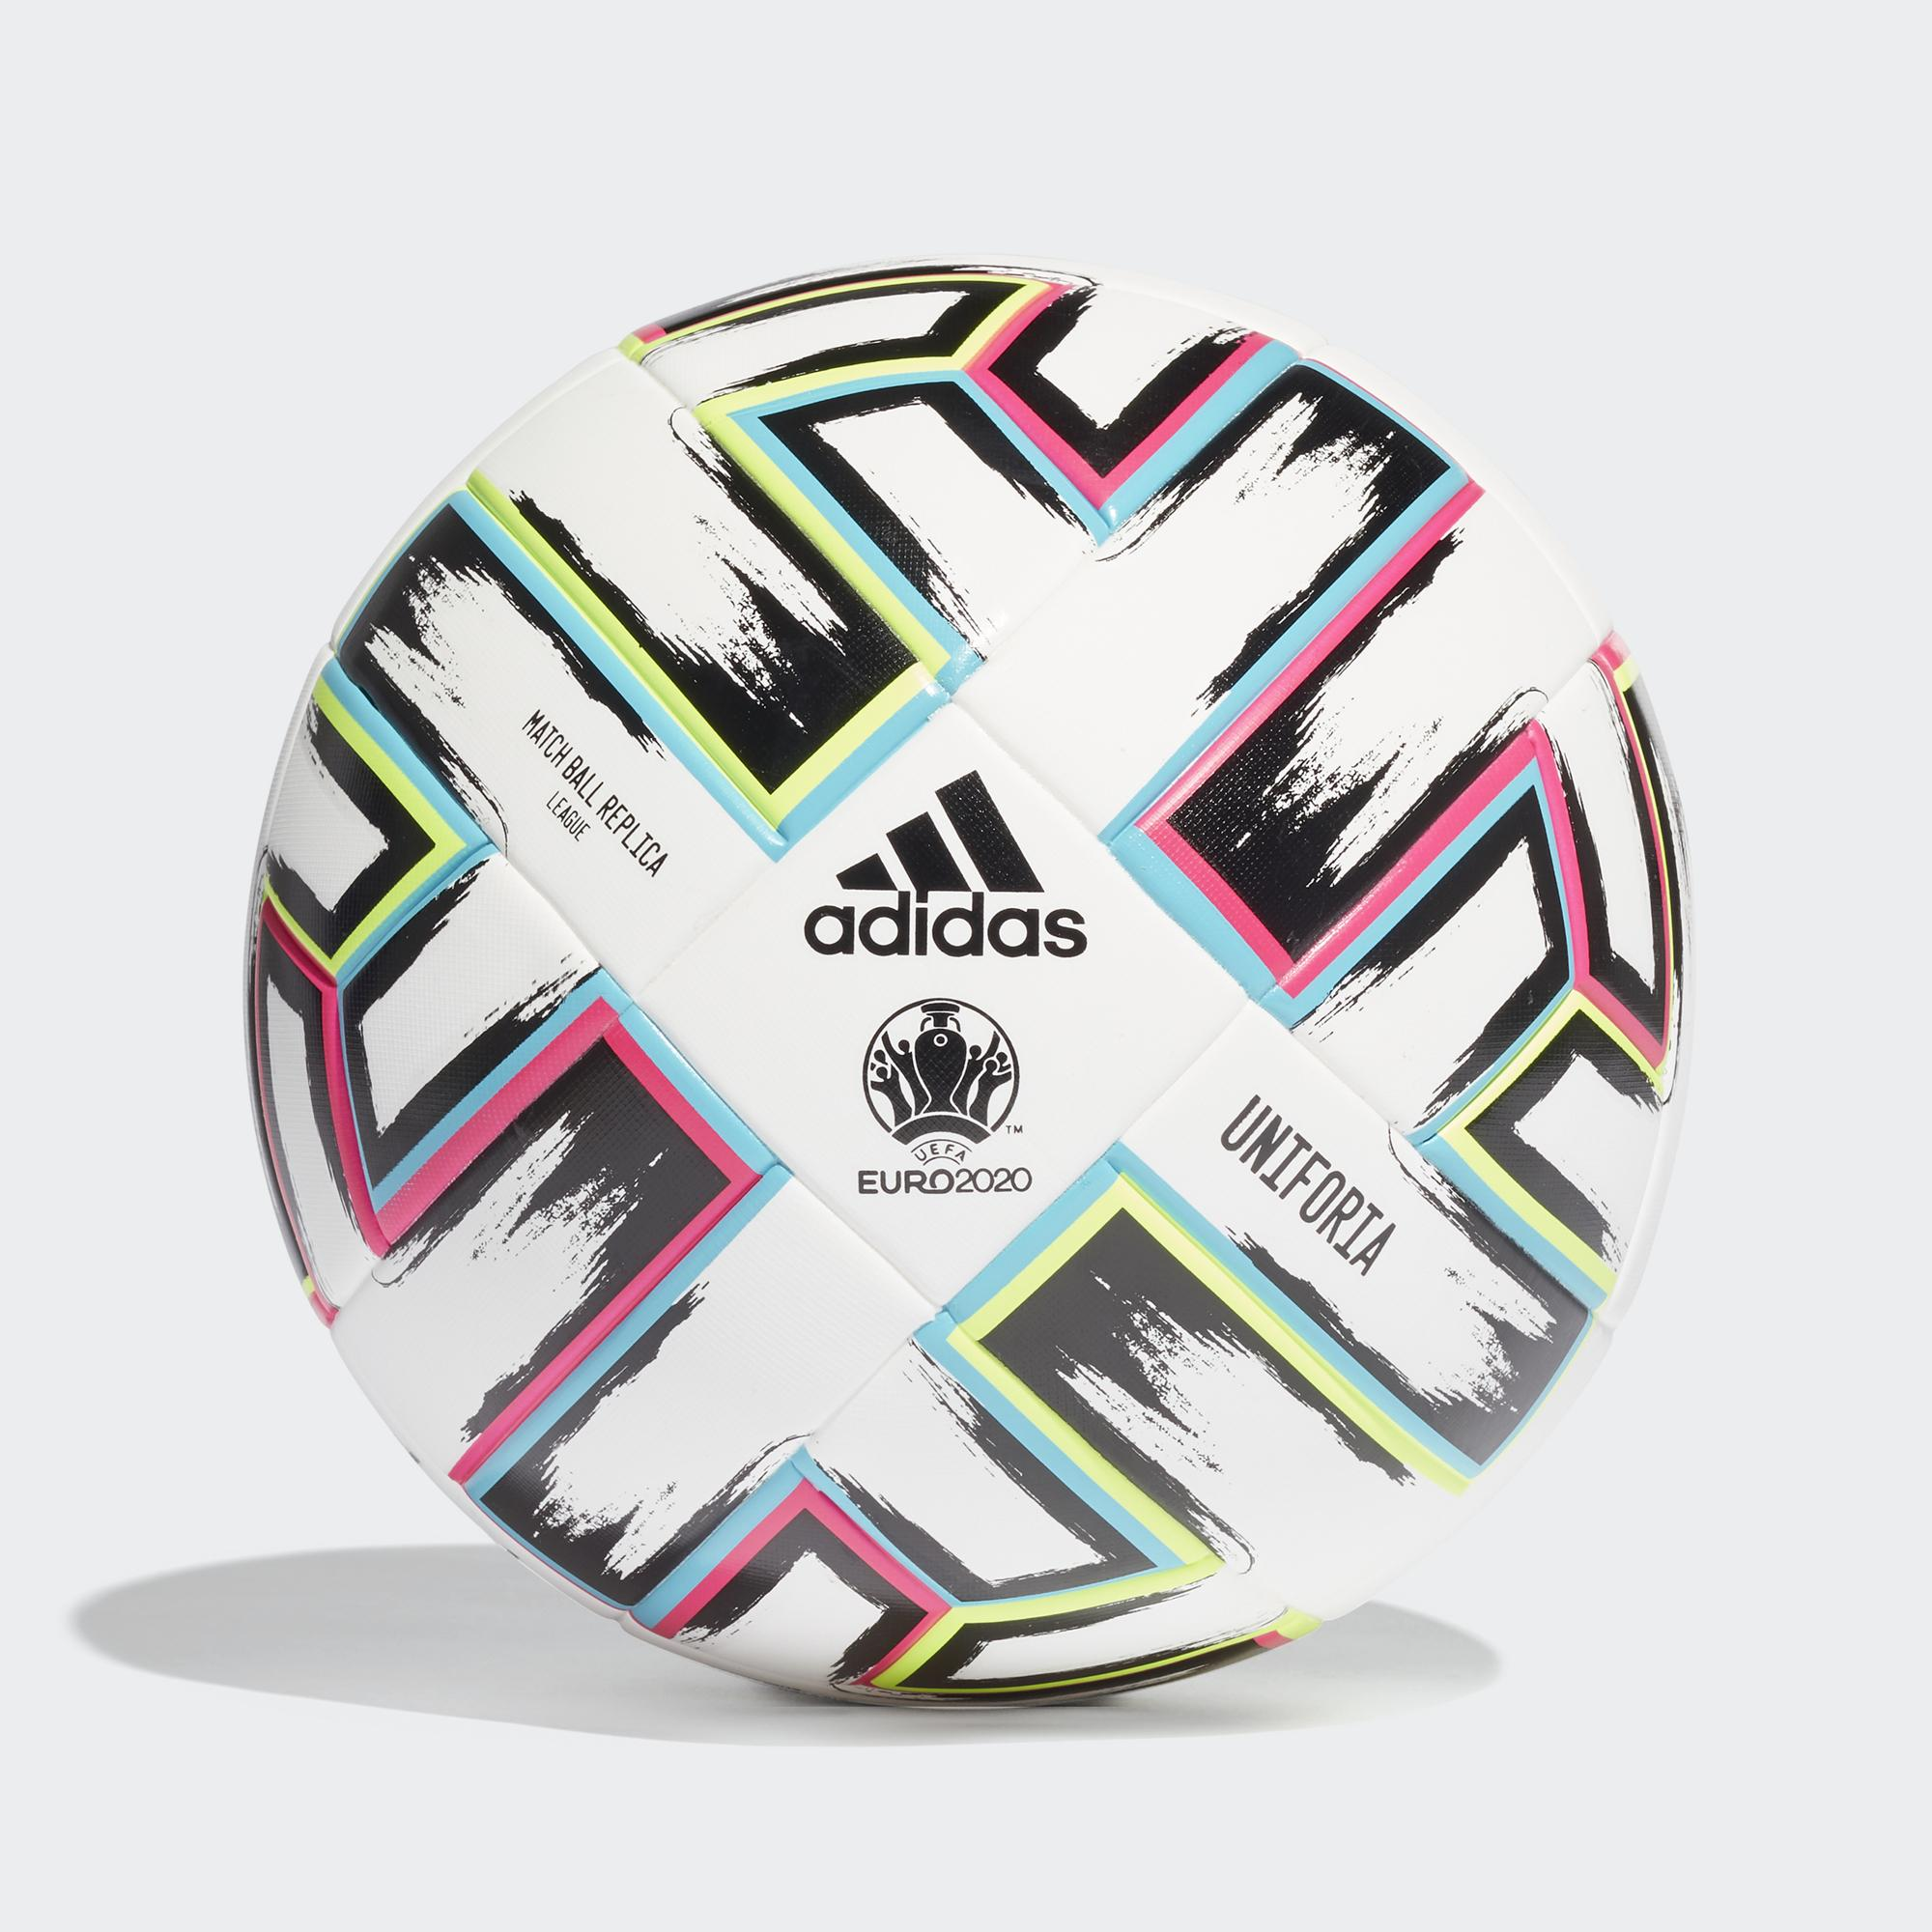 Adidas Pallone Uniforia League Box